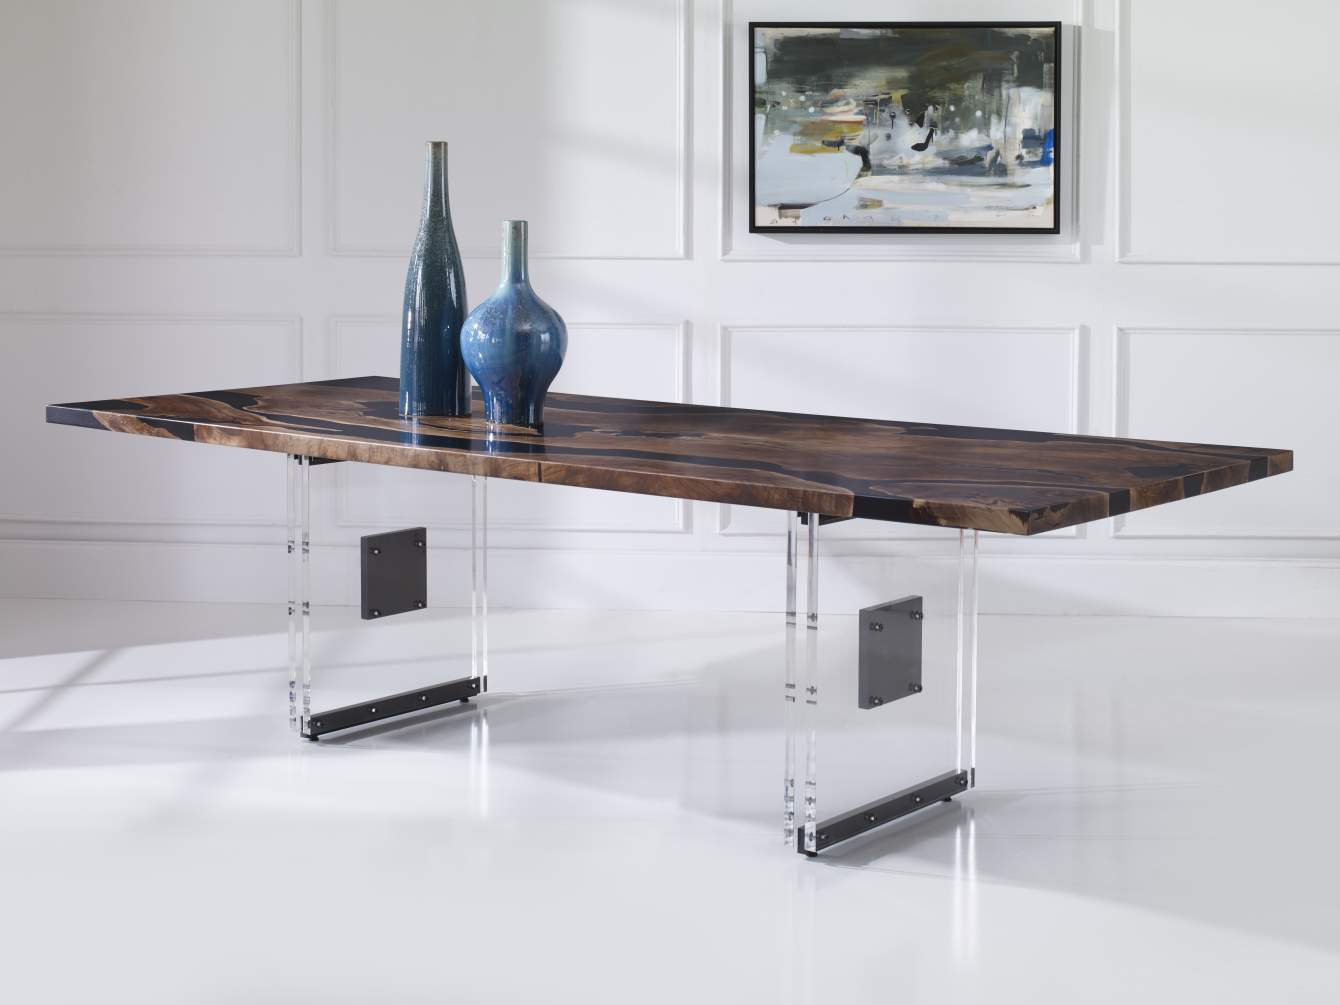 [object Object] Glasgow Dining Table